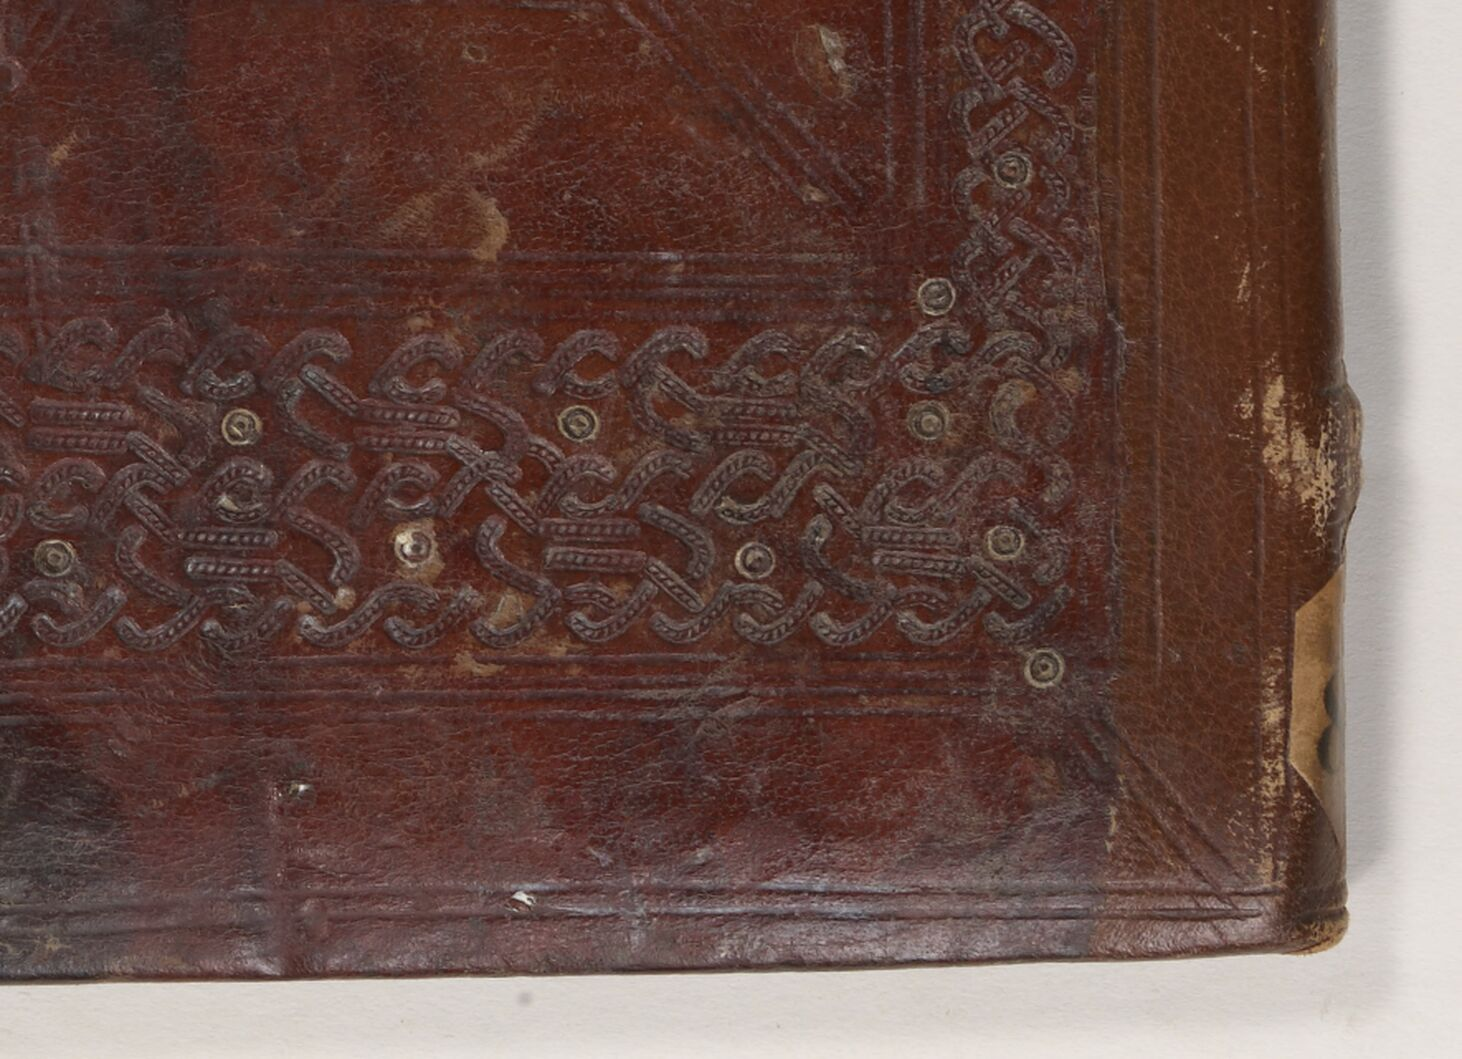 Tooled interlace